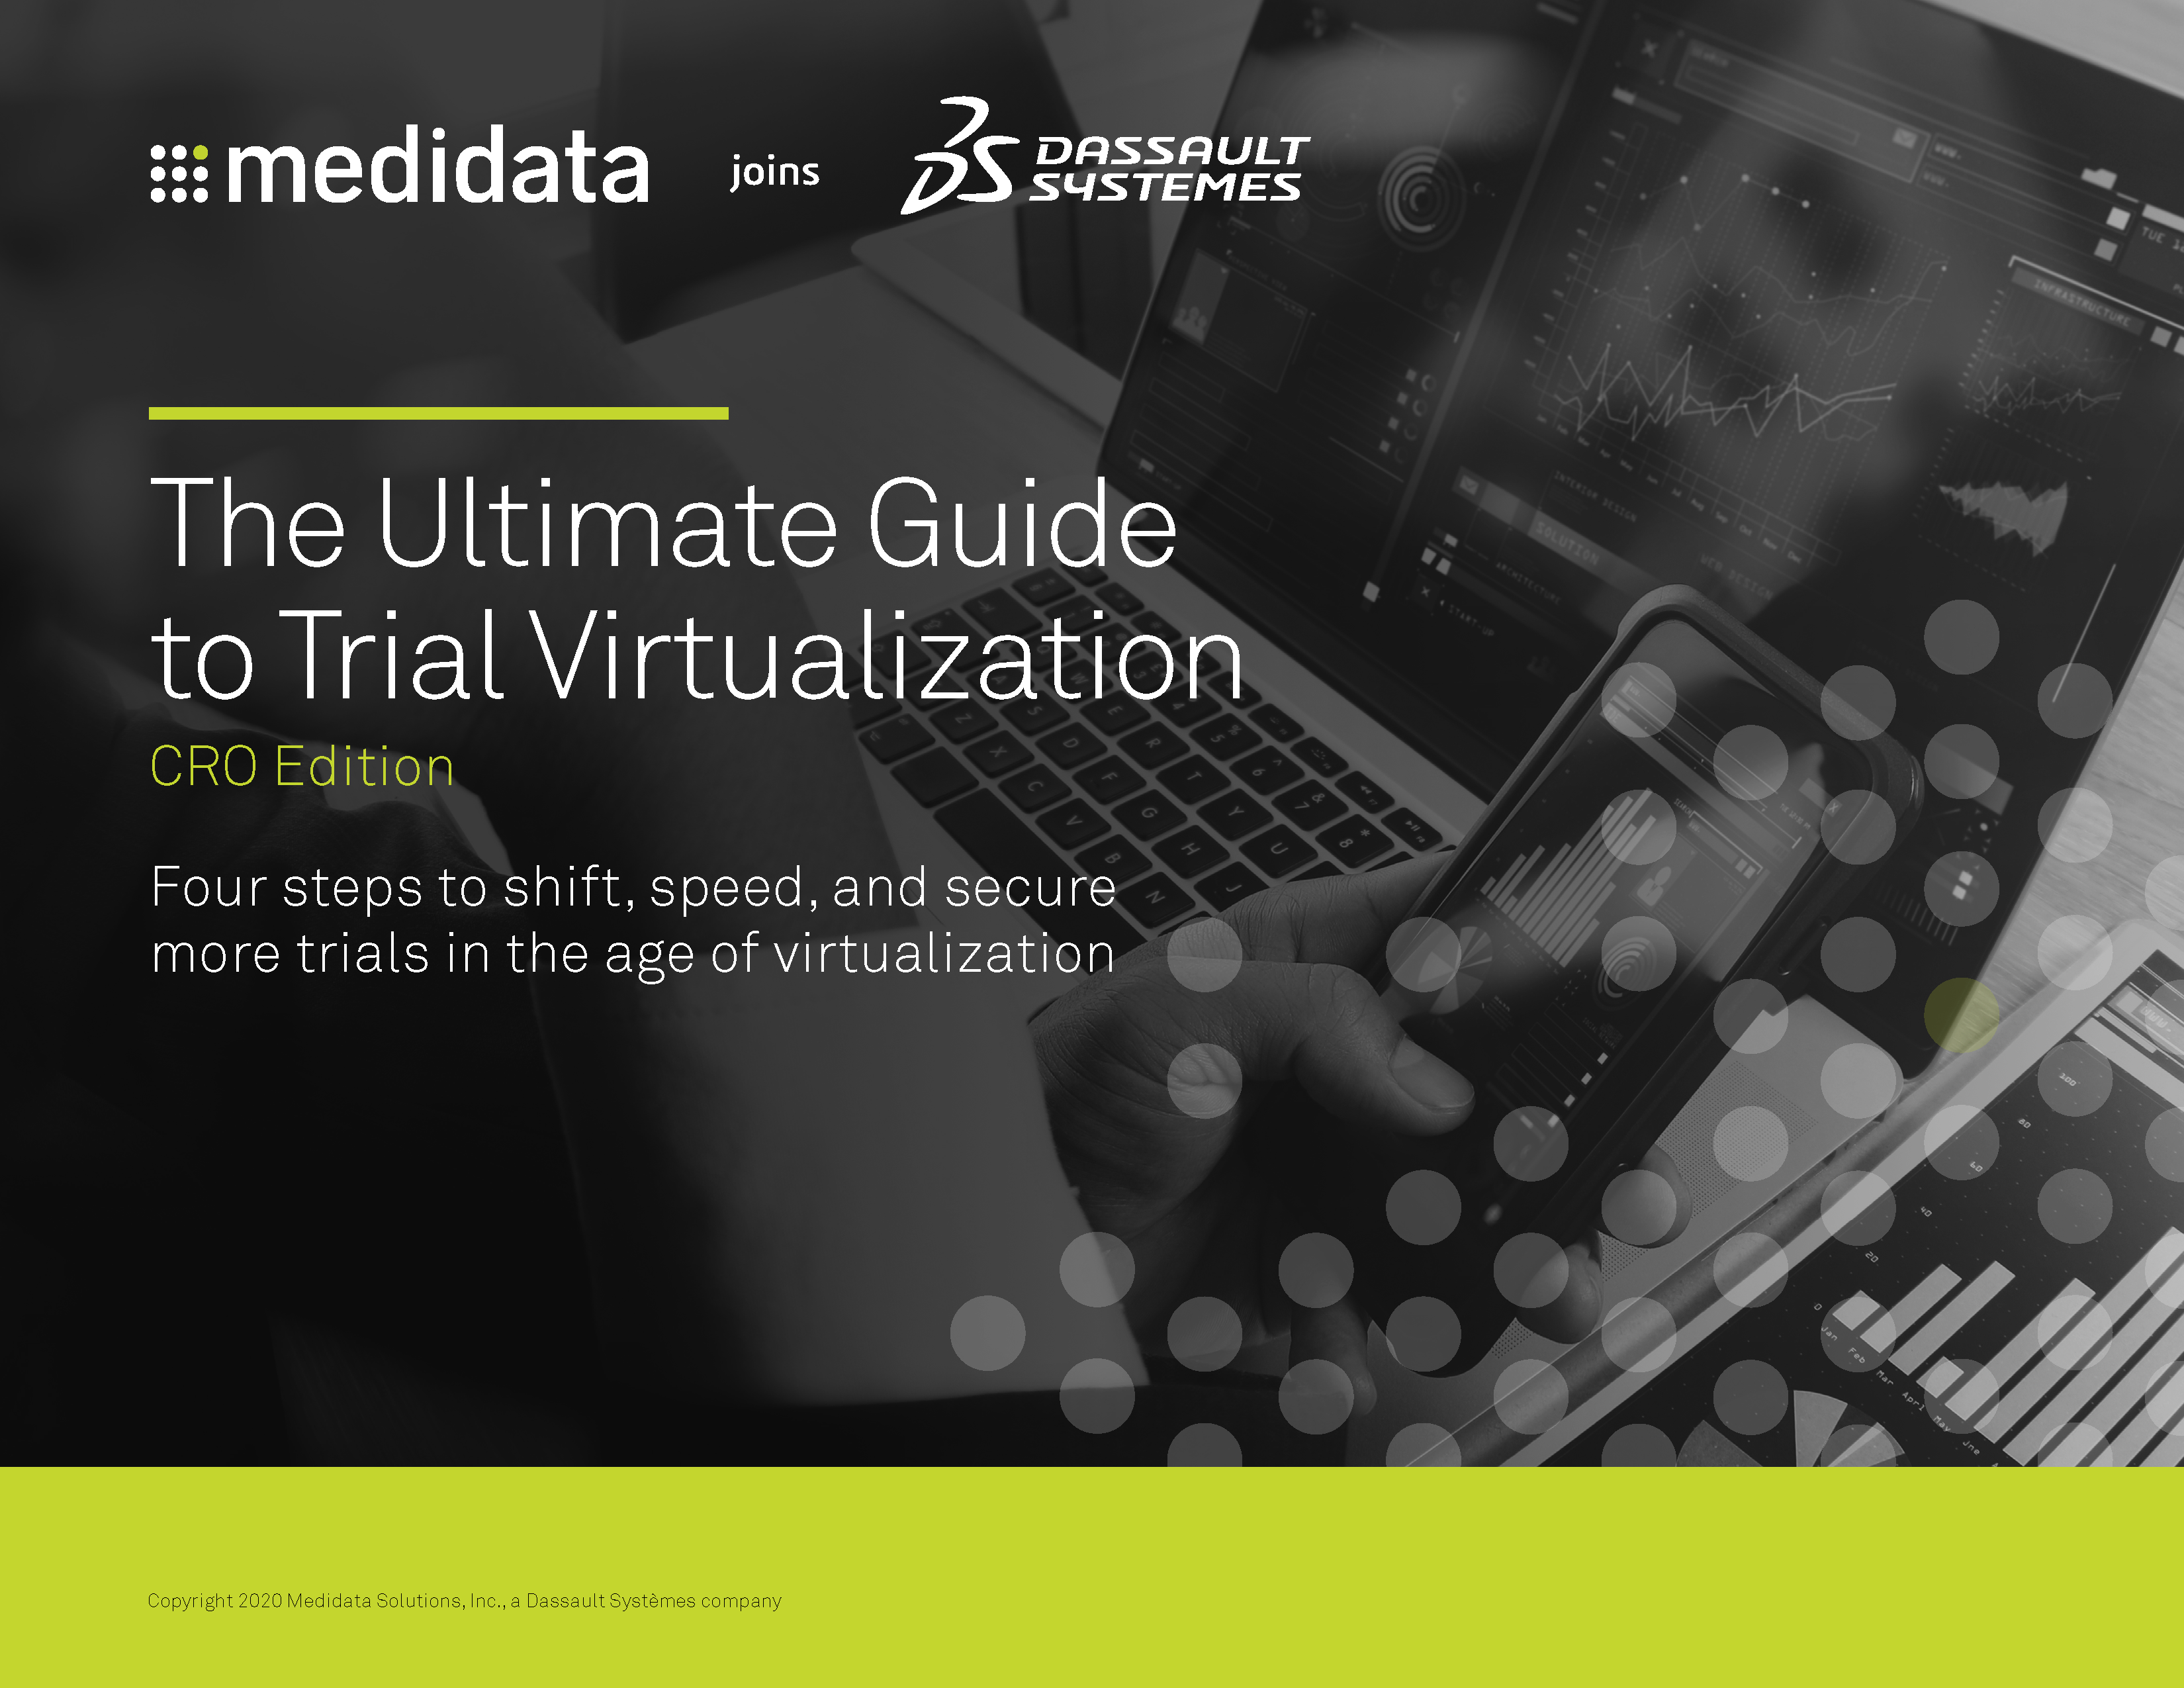 The Ultimate Guide to Trial Virtualization: CRO Edition